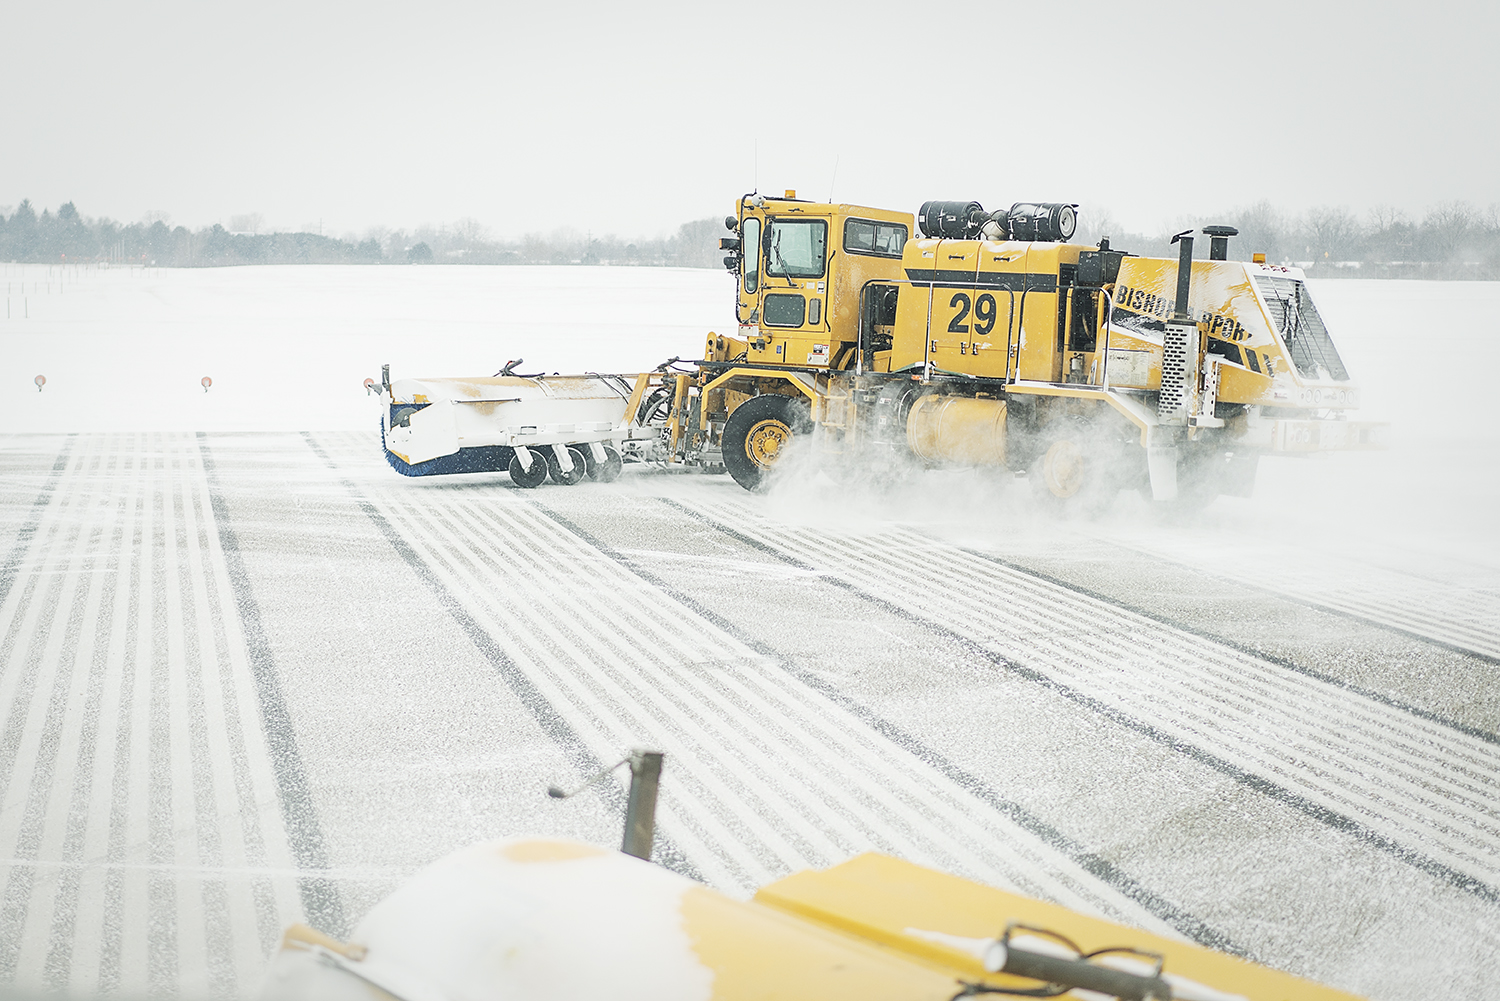 A broom truck, using massive brushes and a blower clears snow from the runway at Bishop International Airport.